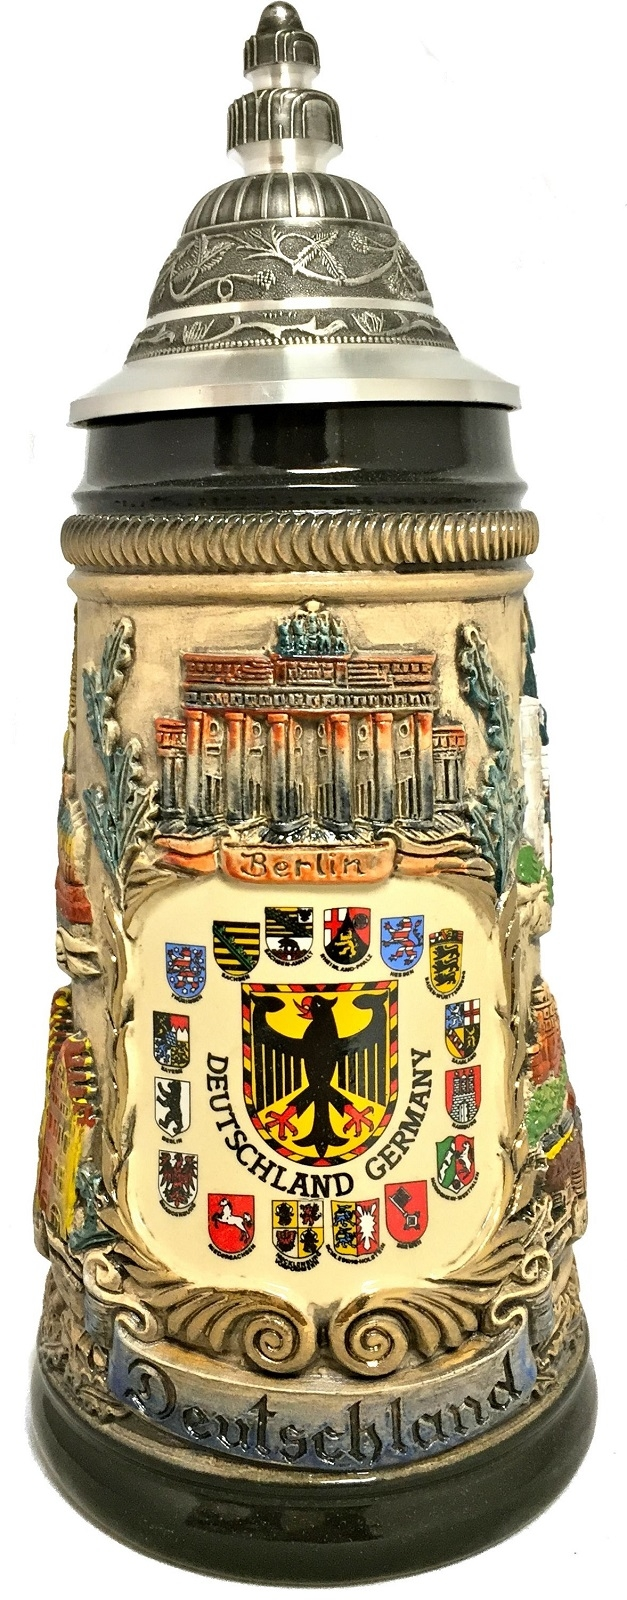 Rustic Deutschland Germany Shield Cities with Crests LE German Beer Stein .5 L